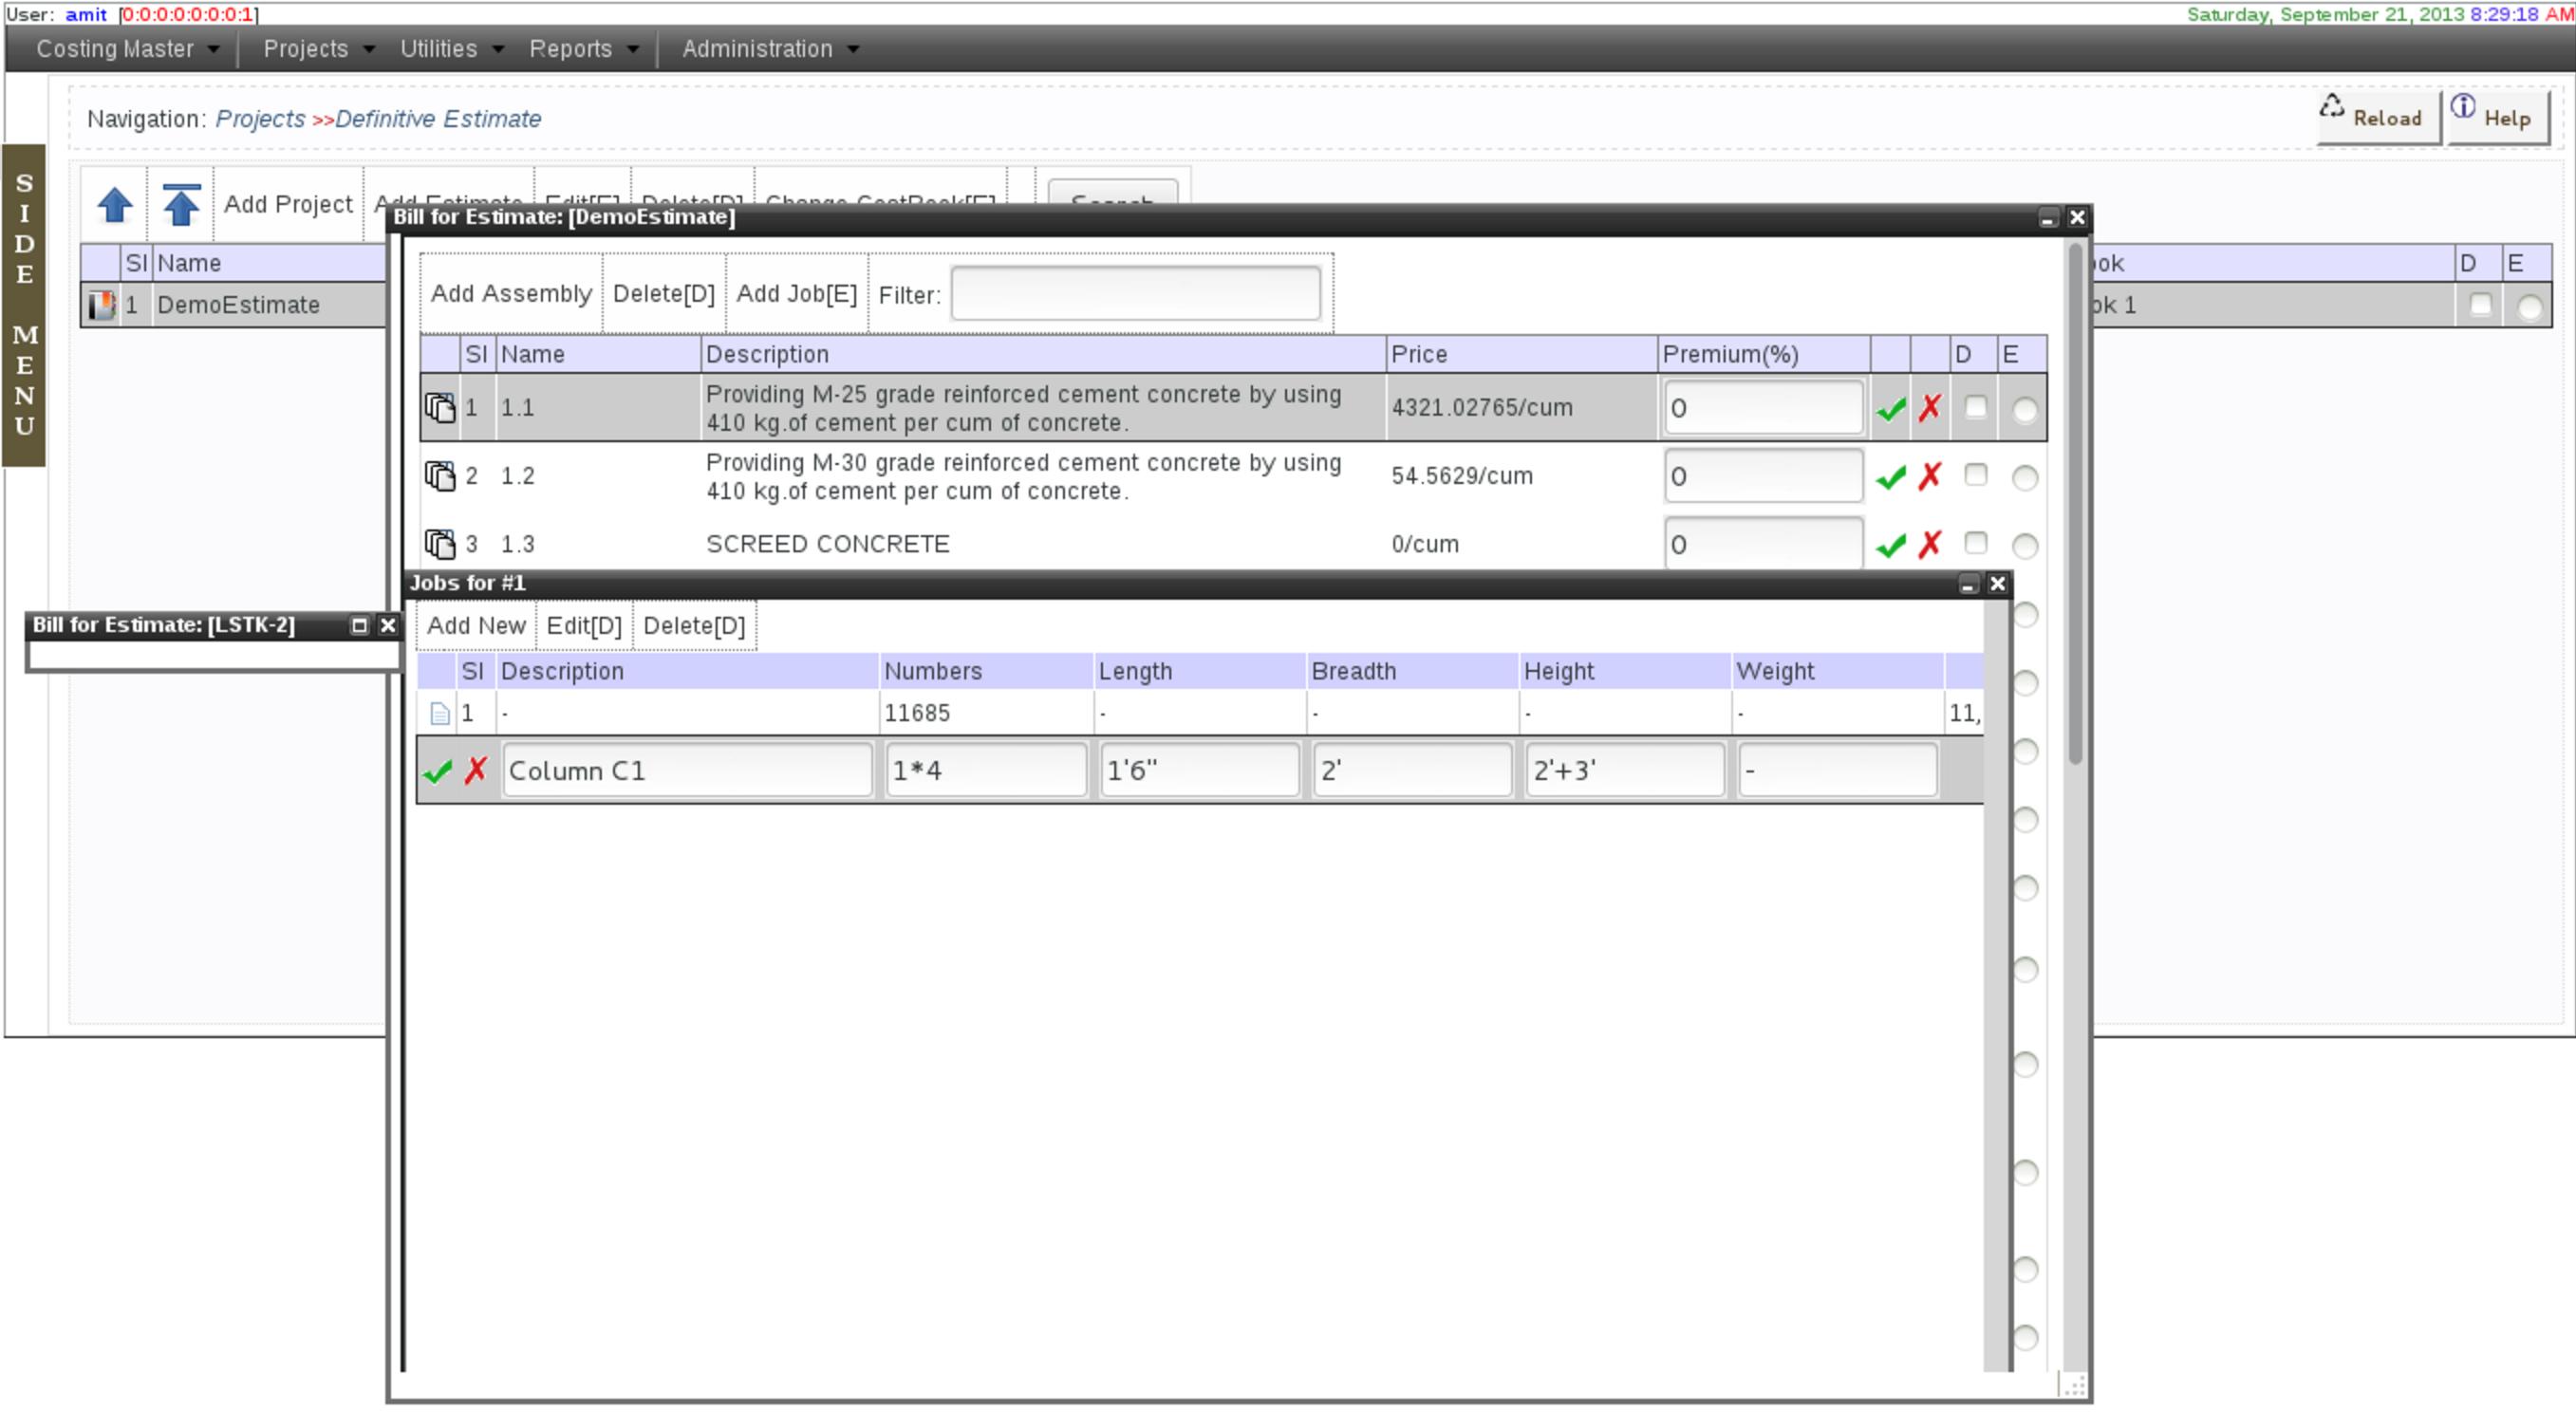 Free Estimating Spreadsheet With 5 Free Construction Estimating  Takeoff Products Perfect For Smbs